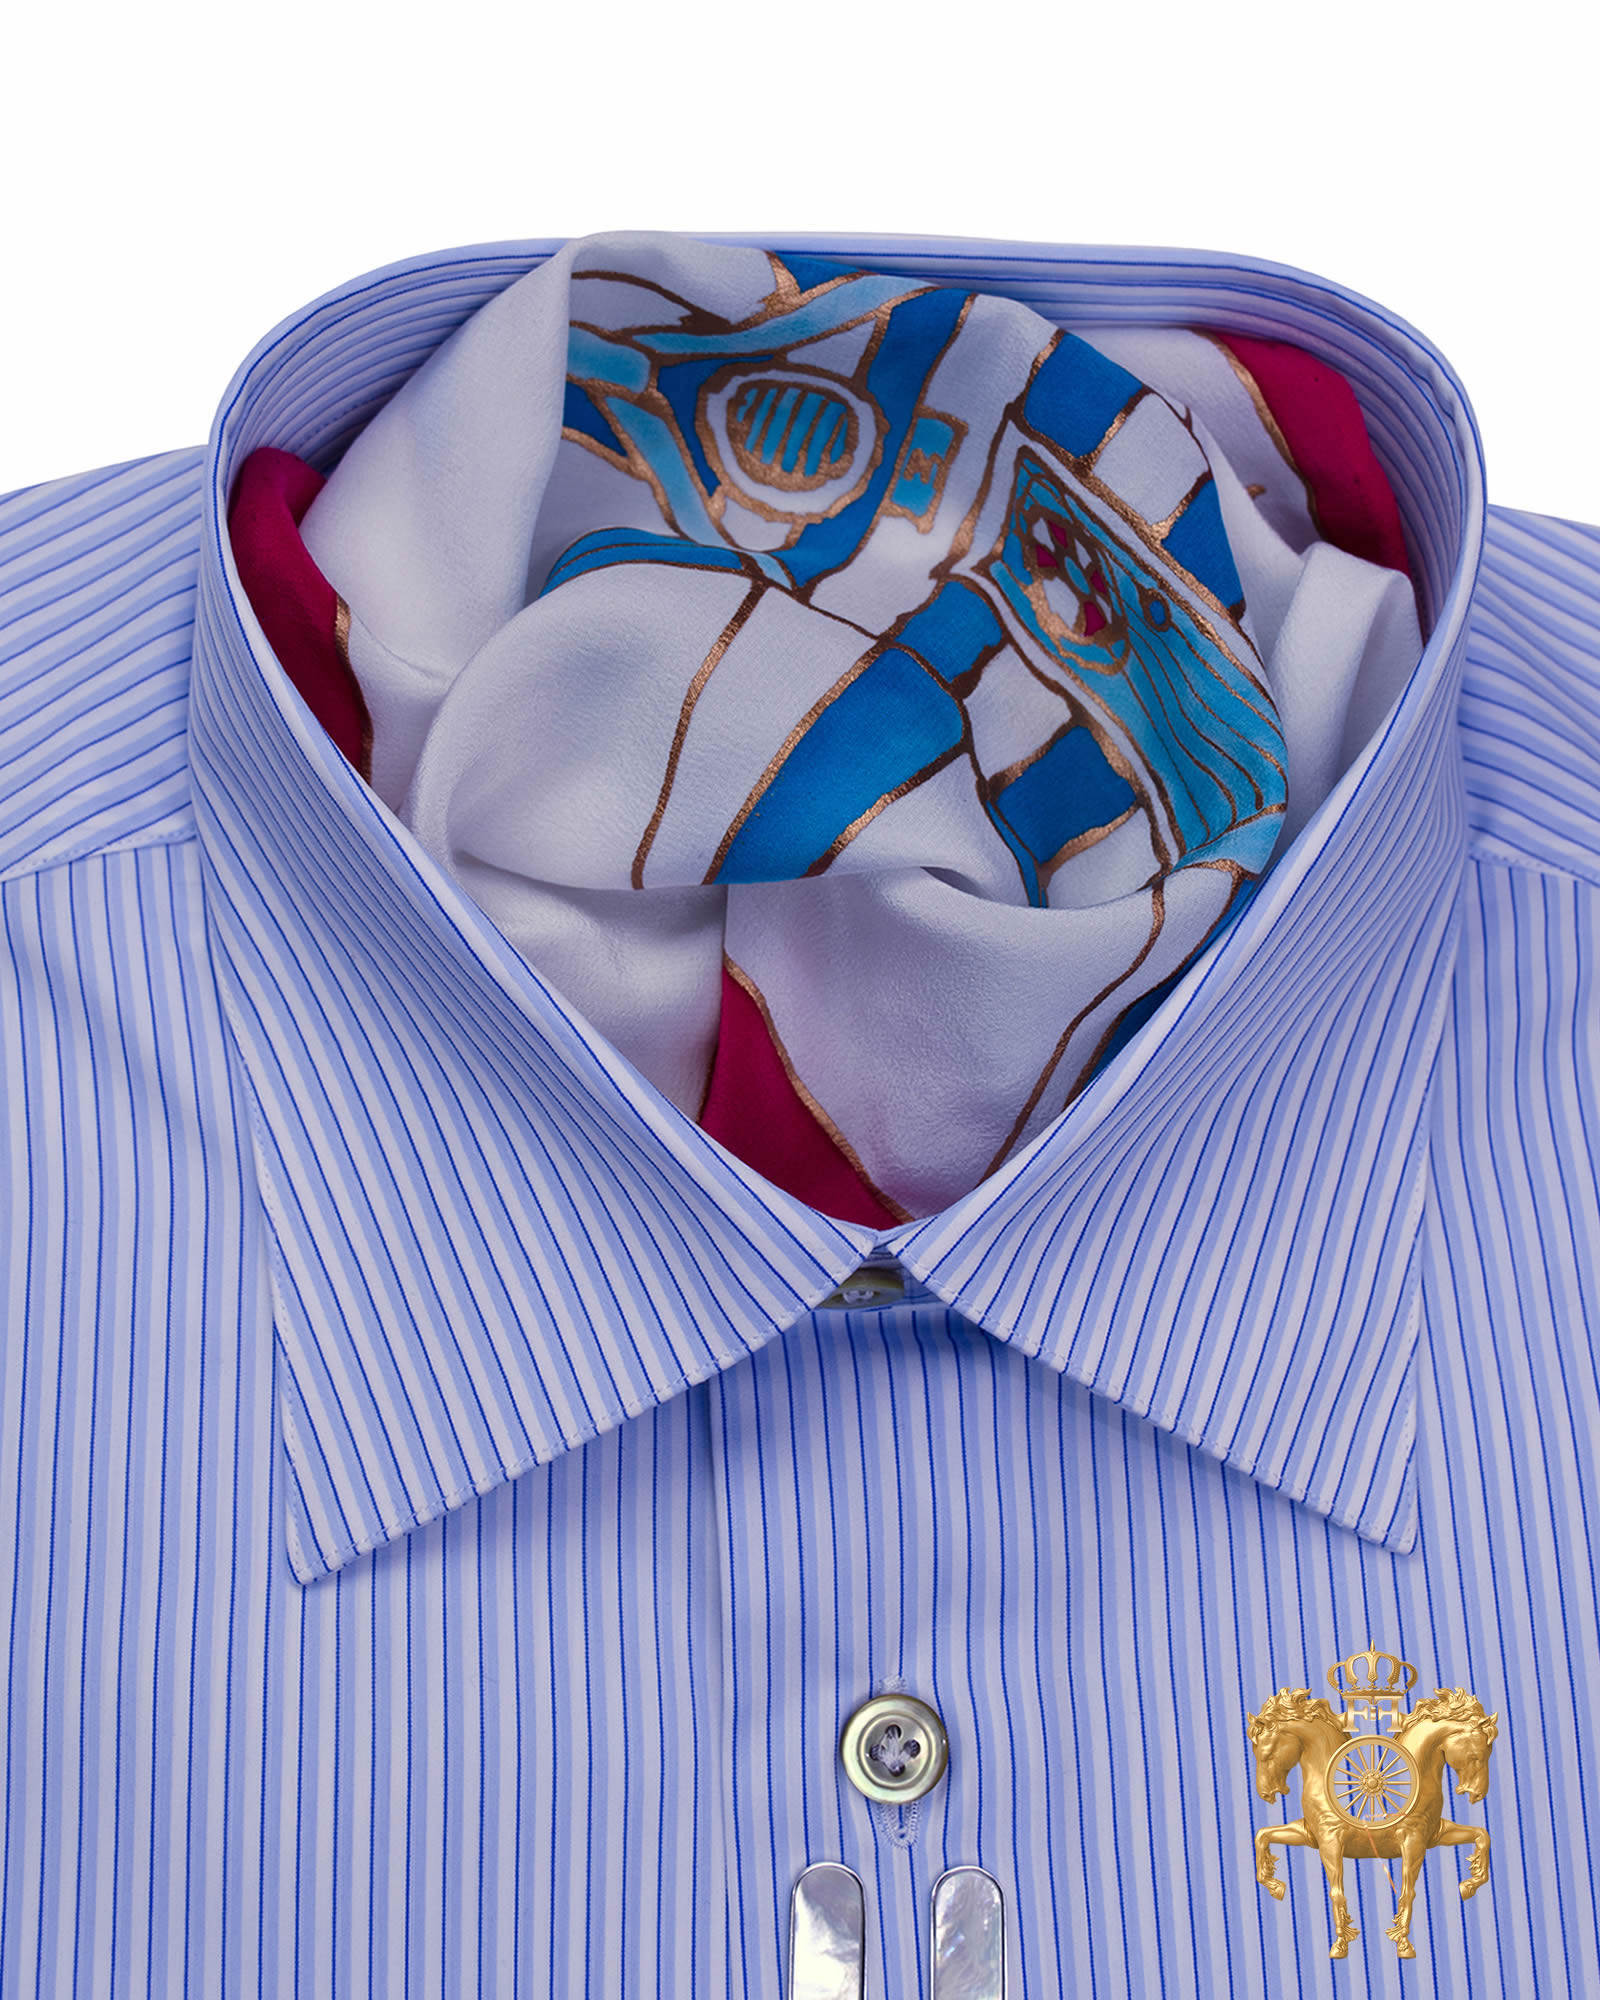 Ferruccio Milanesi Luxury Dress Shirt |quality men's dress shirts